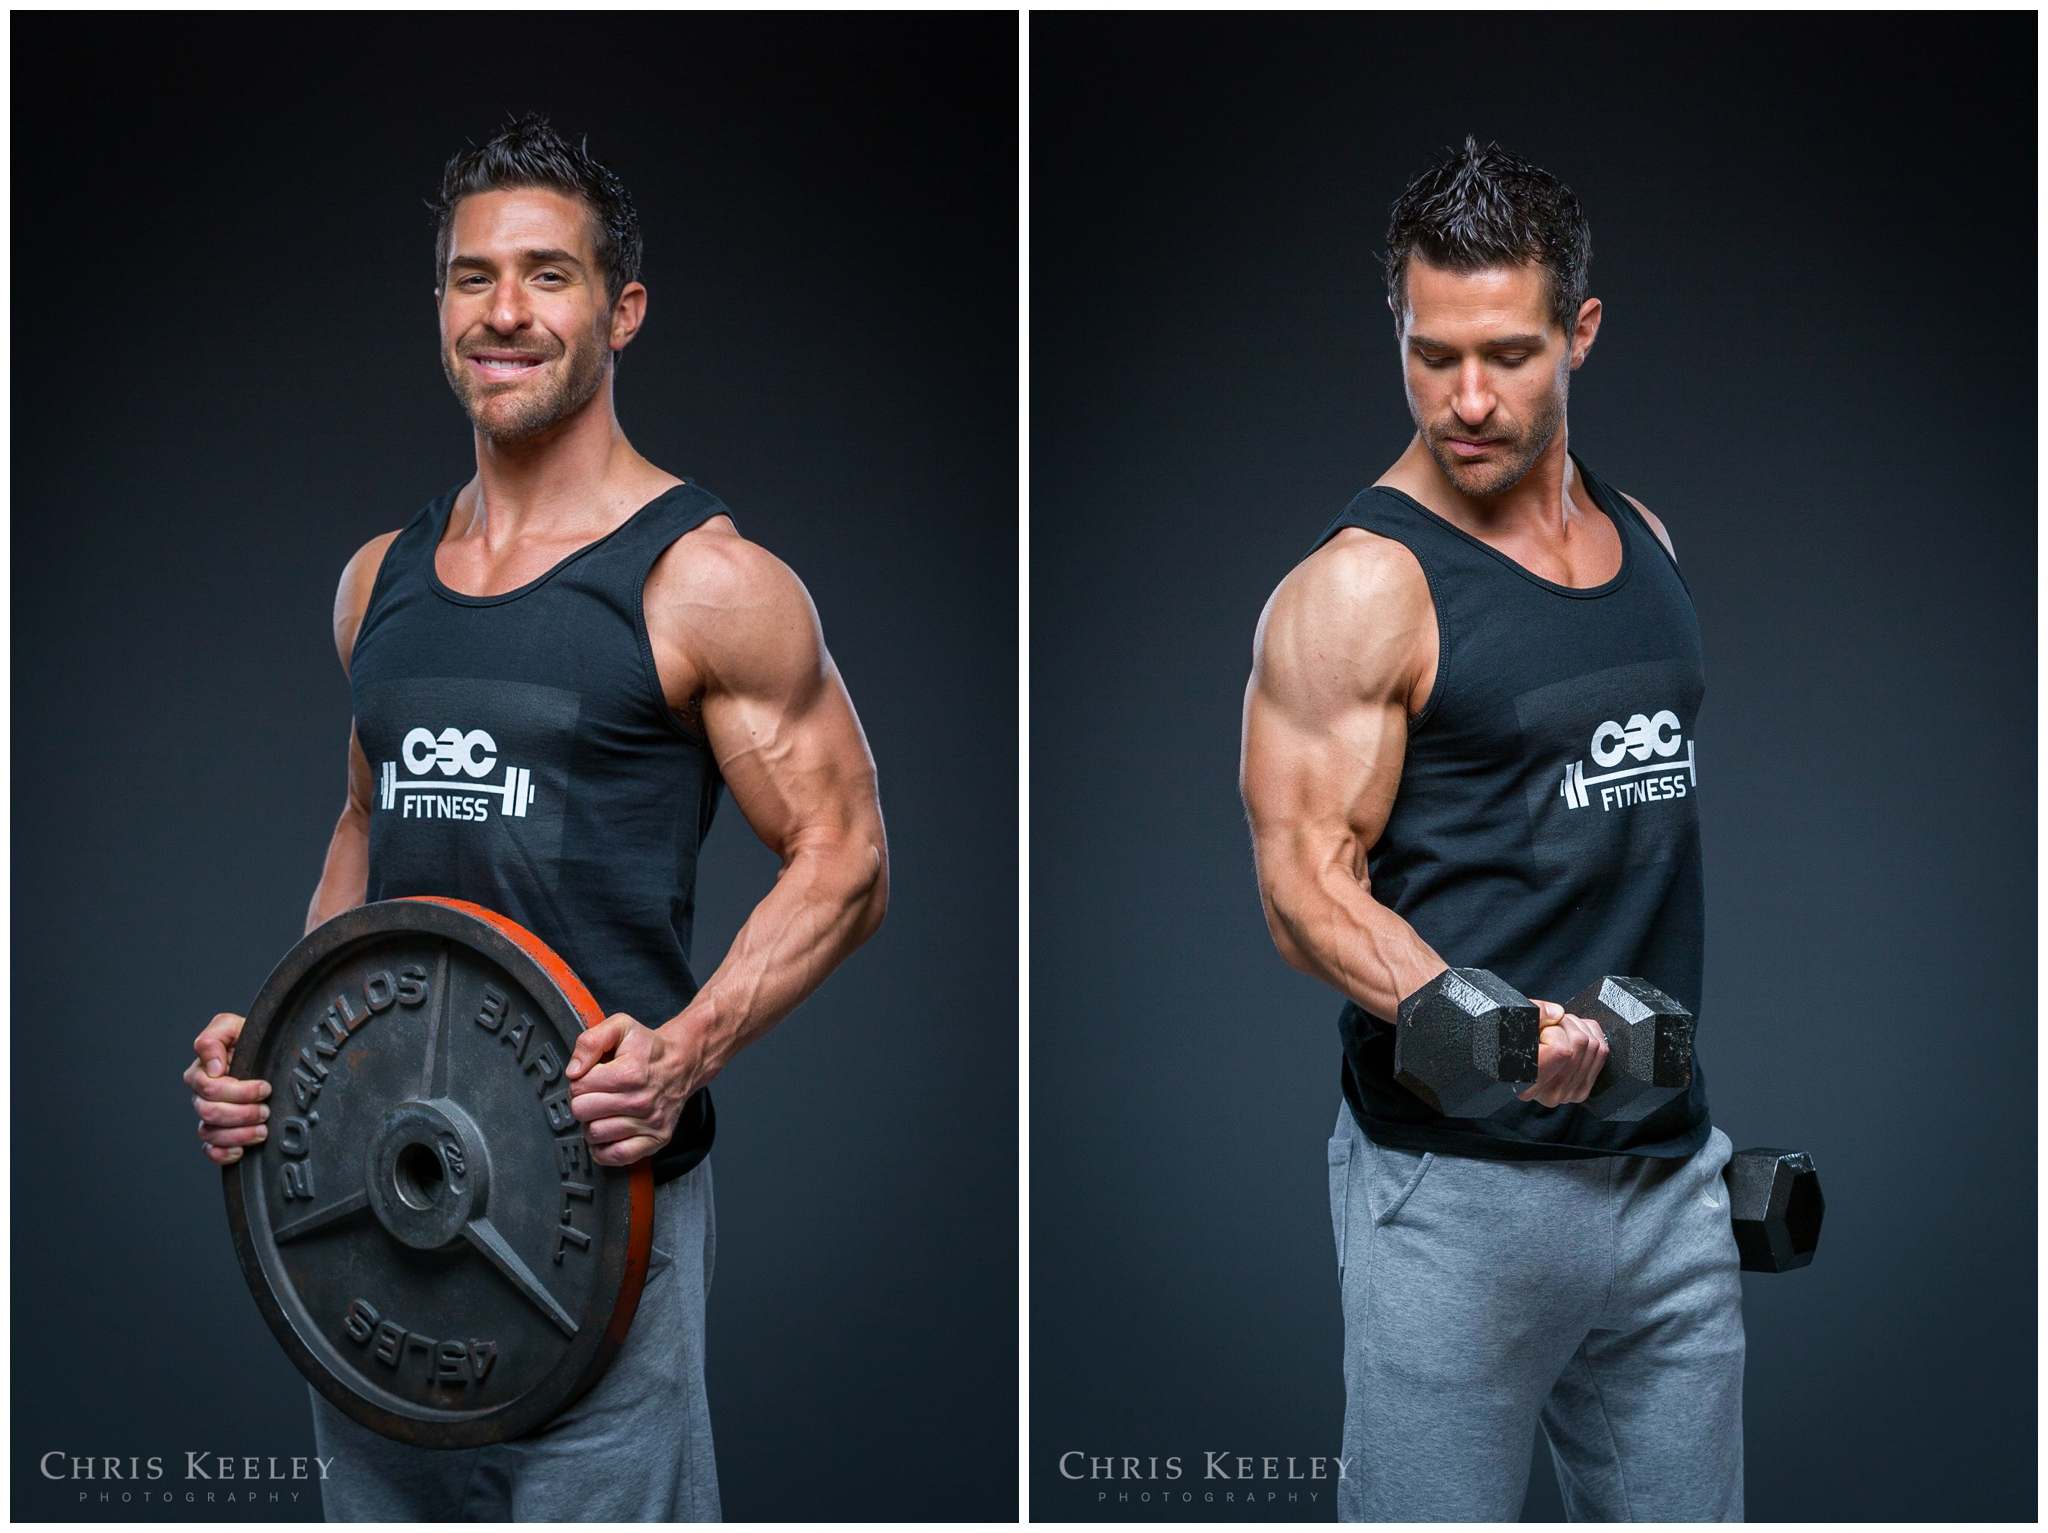 fitness-photos-personal-trainer-maine-new-hampshire-chris-keeley-photography-09.jpg